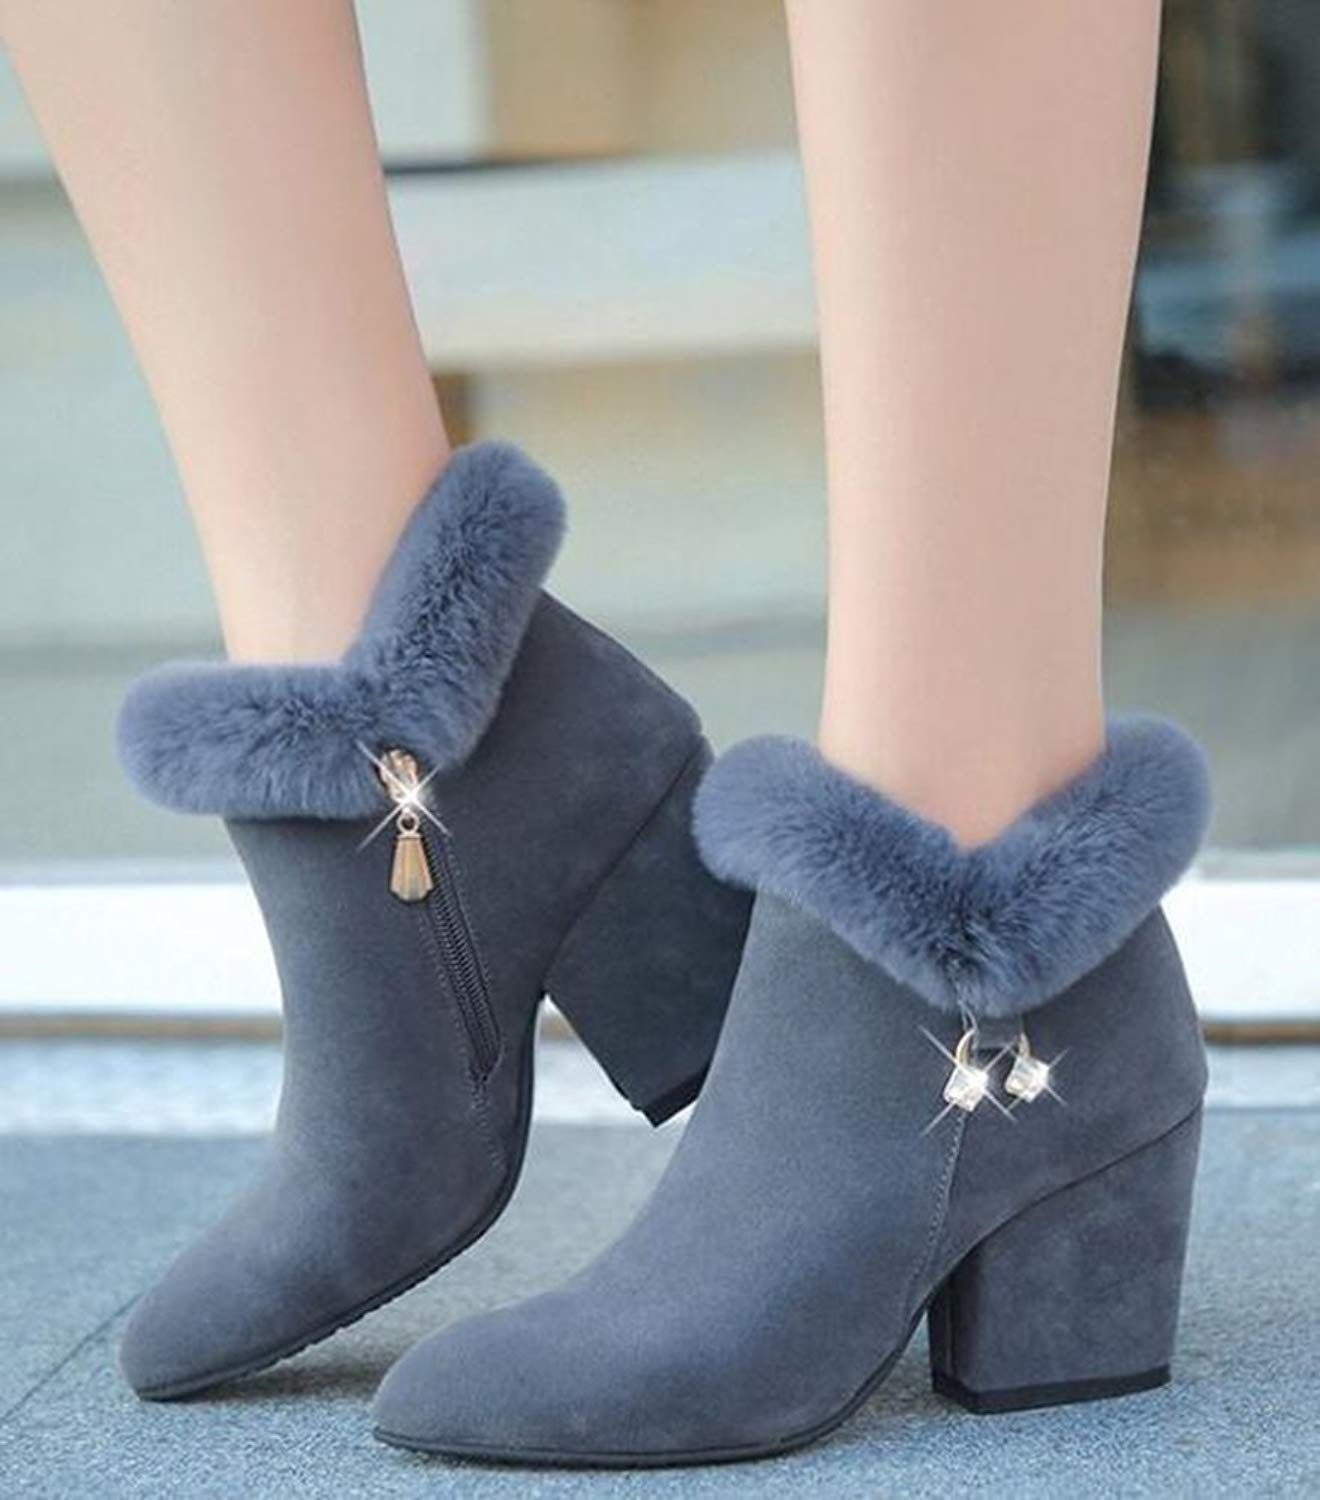 Ladies Womens Winter Fluffy Fur Ankle Boots Zip Casual Fashion Velvet Shoes Size